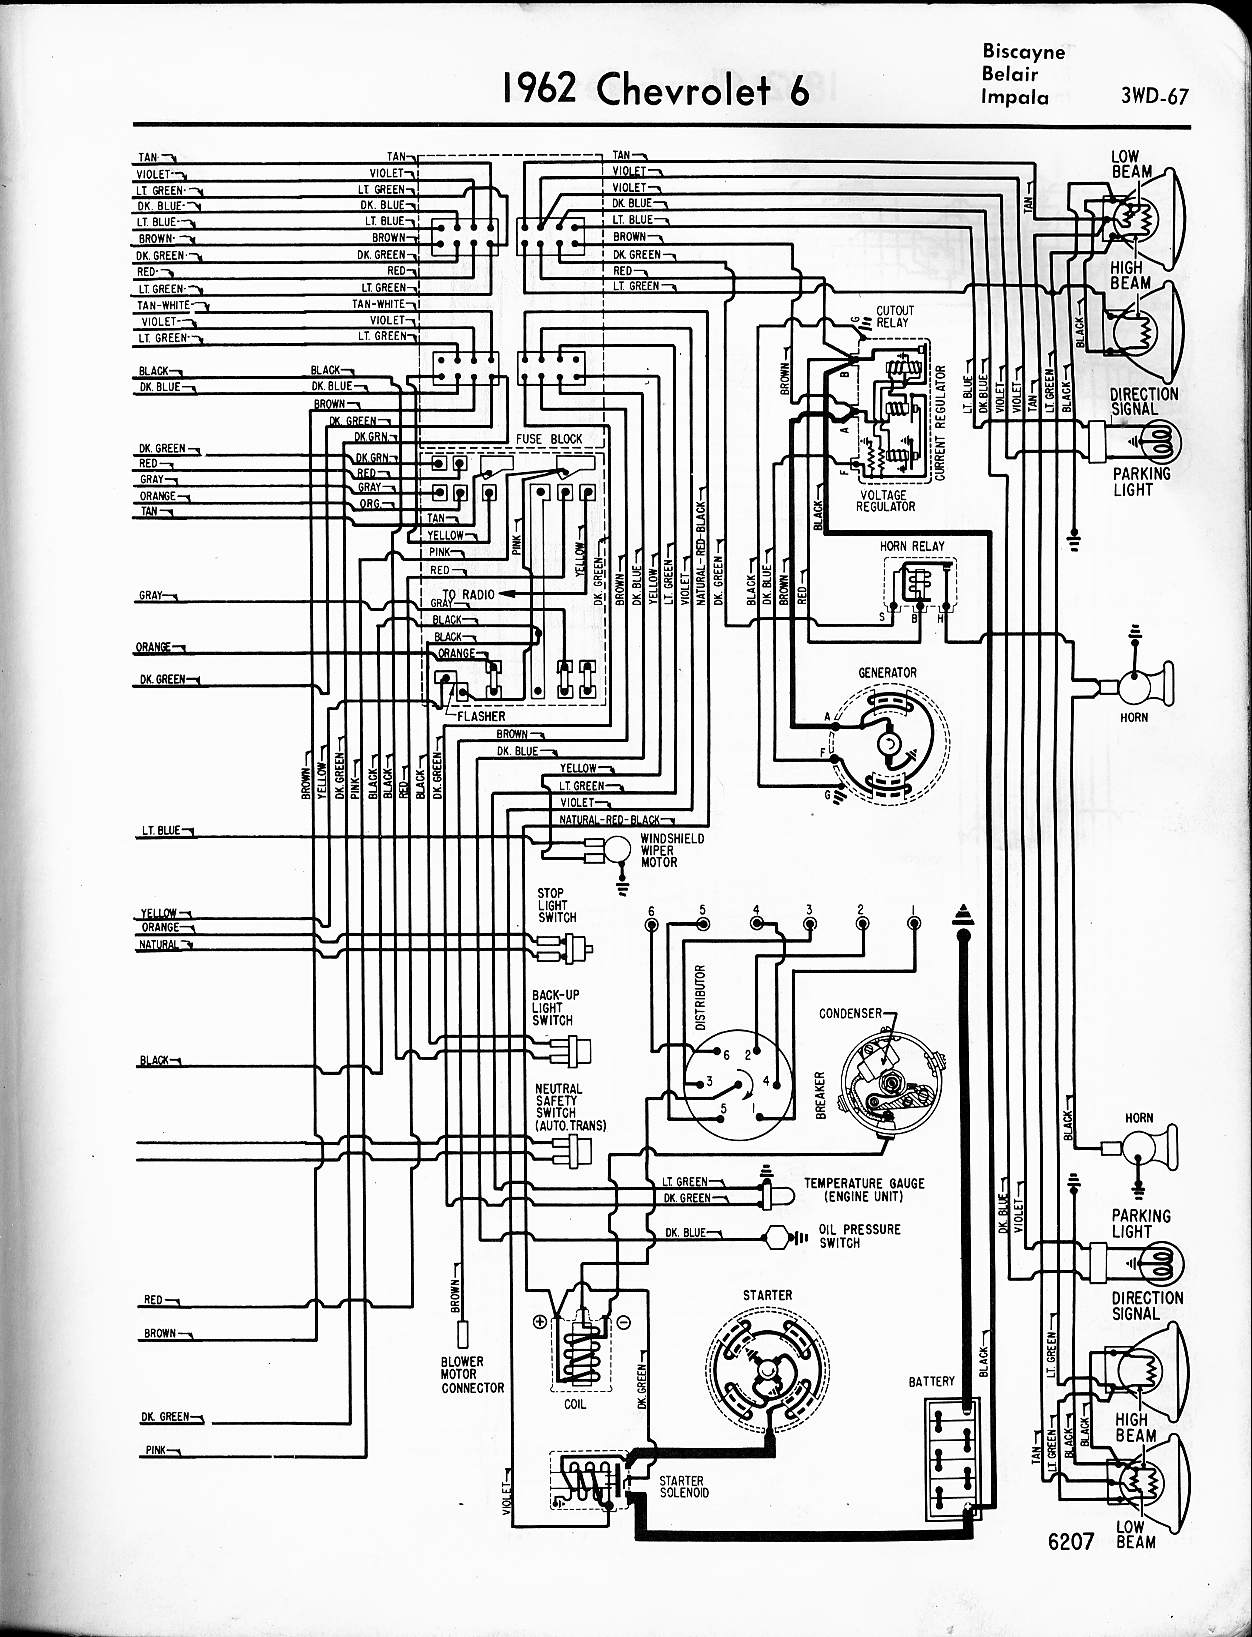 1962 Impala Wiring Diagram Just Wiring Data Jeep CJ5 Wiring Schematic 1969  Impala Wiring Diagram Schematic